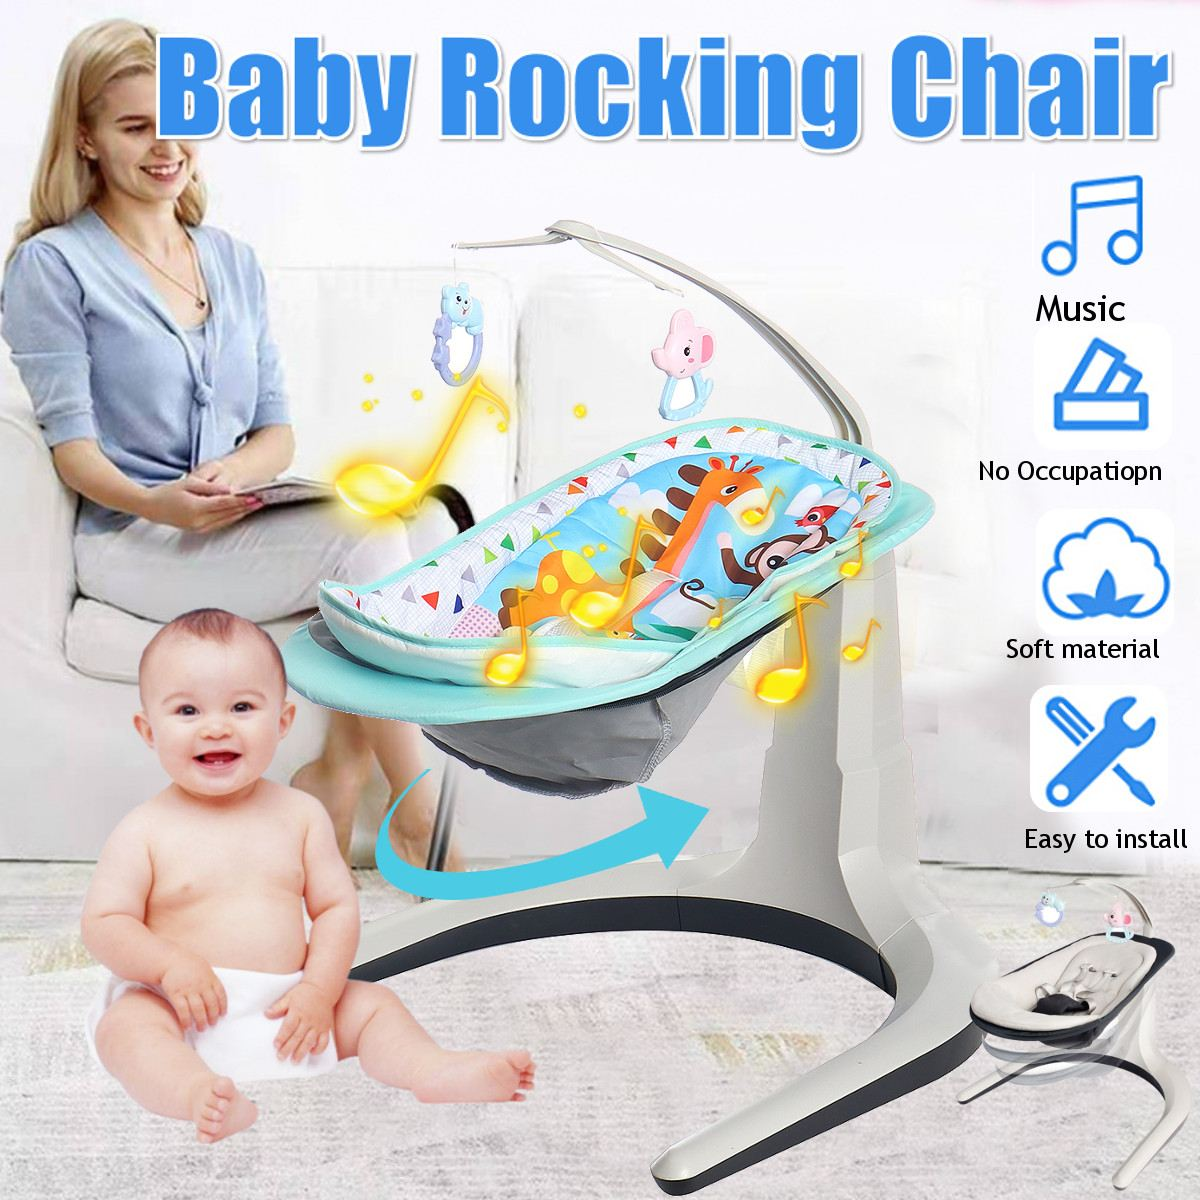 2 in 1 Newborn Gift Multi function Music Electric Swing Chair Infant Baby Rocking Chair Comfort Home v5 VC